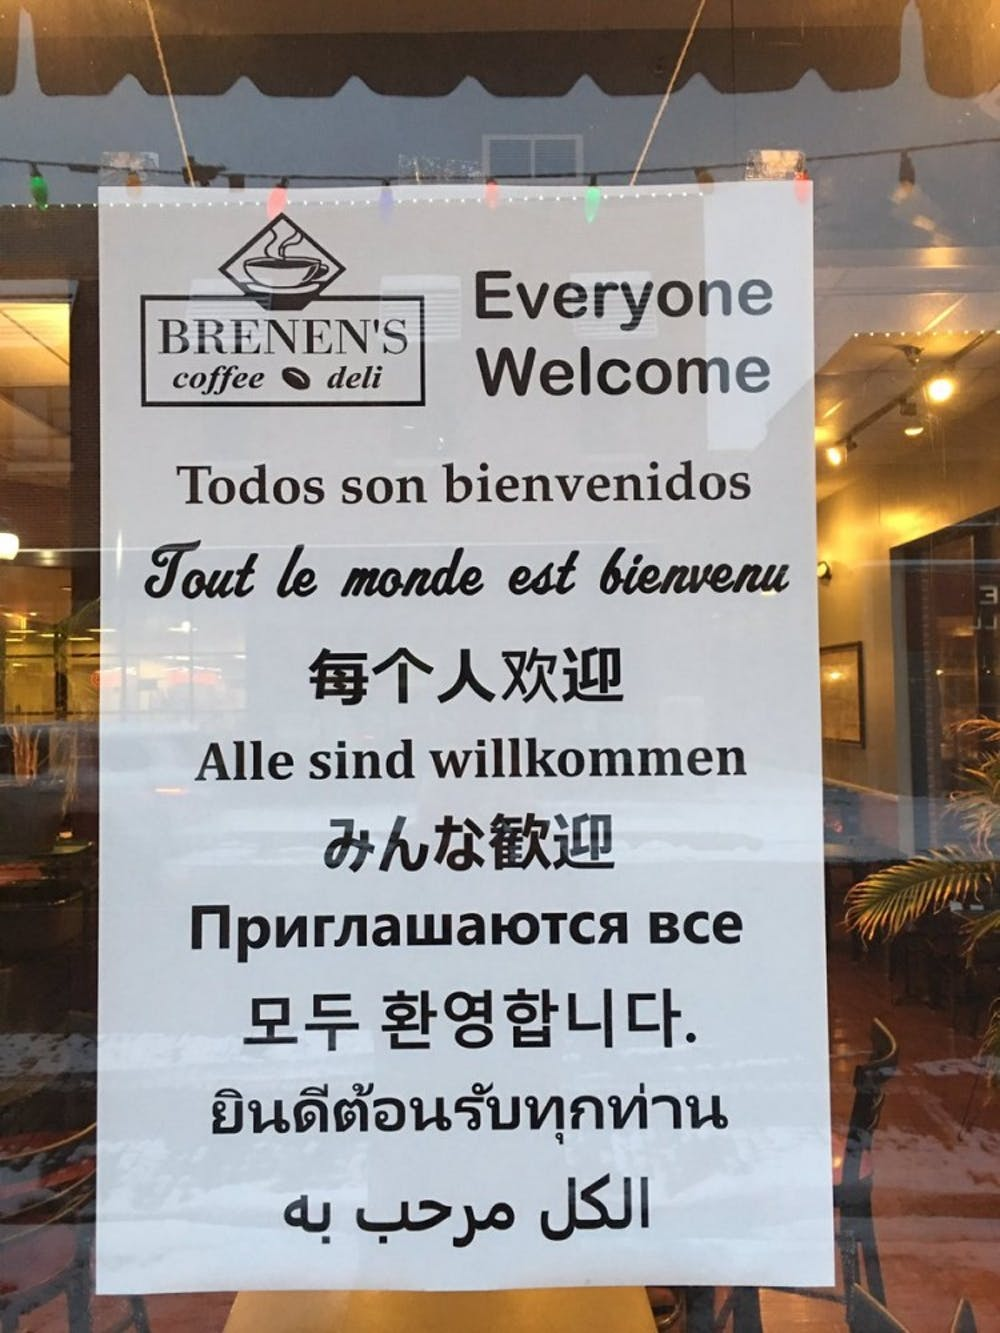 Brenen's Cafe posts sign welcoming all into its Athens restaurant